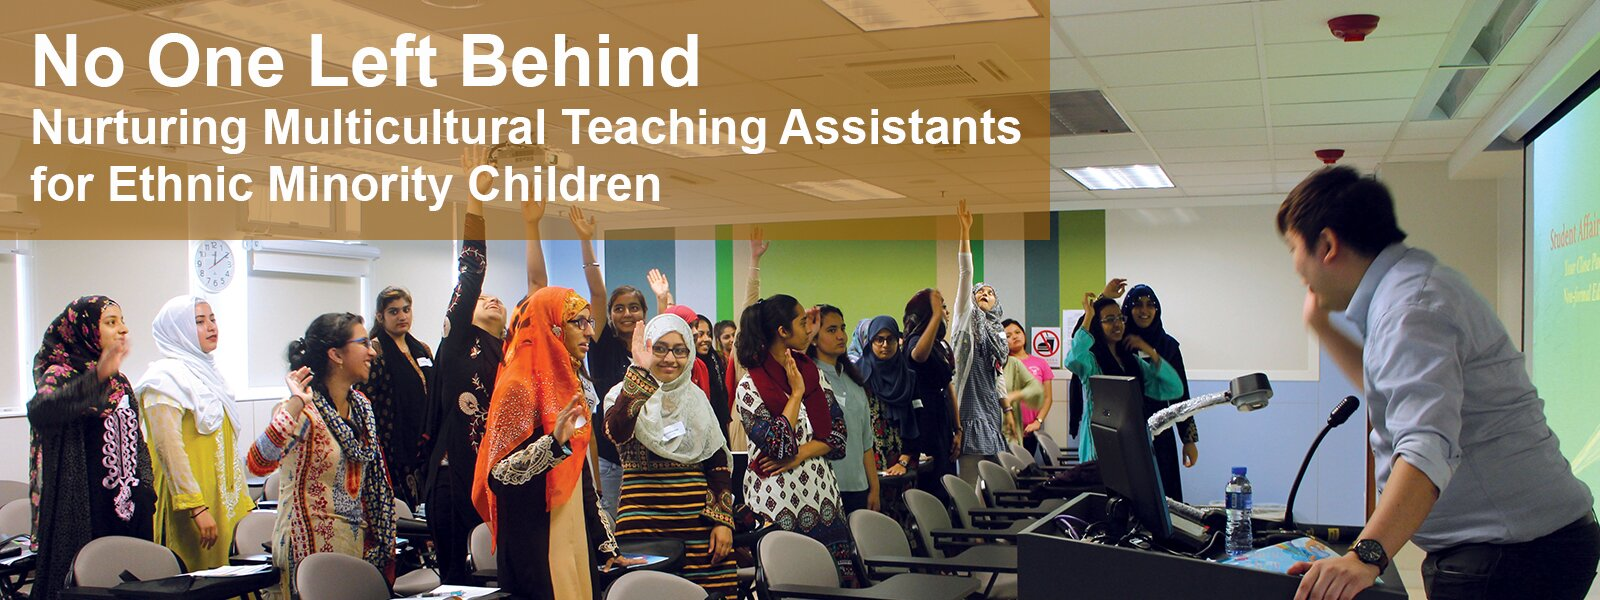 No One Left Behind: Nurturing Multicultural Teaching Assistants for Ethnic Minority Children